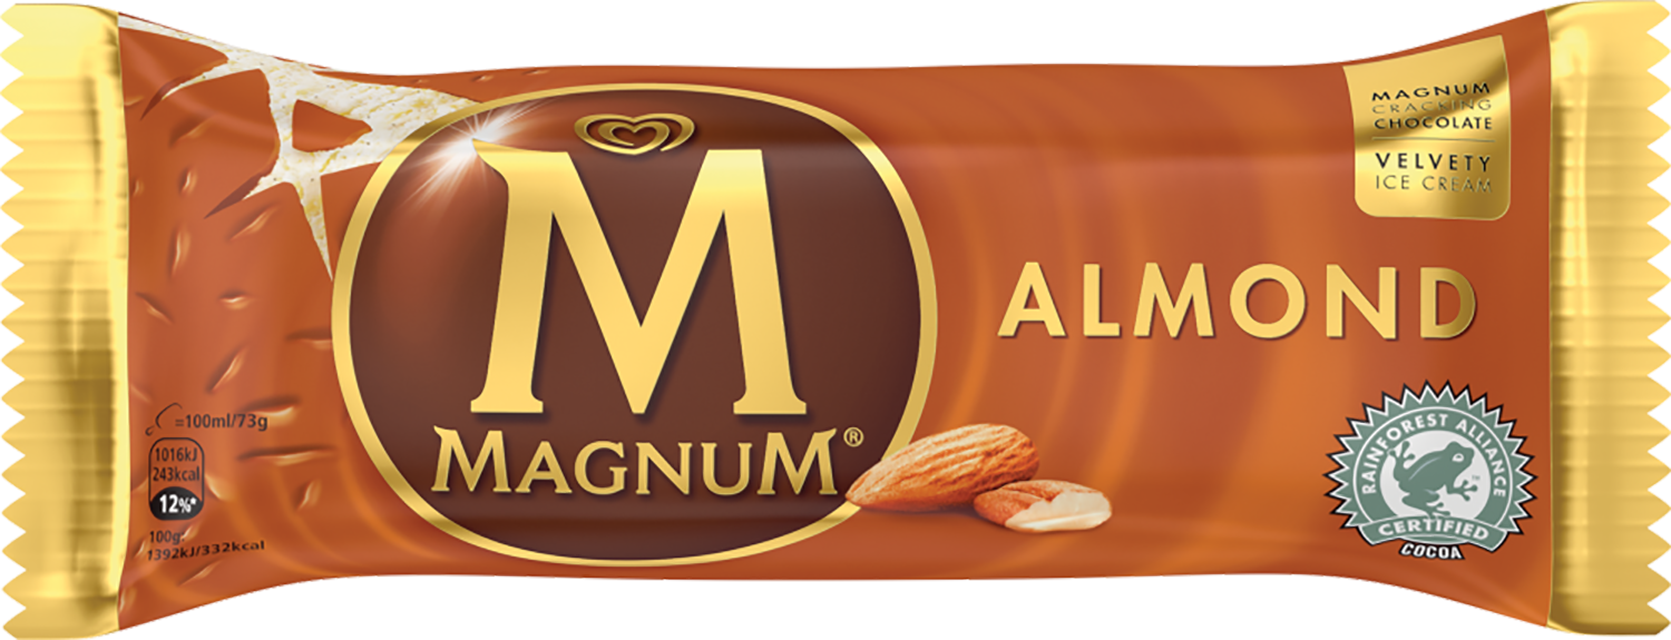 2802 - Magnum Almond.png